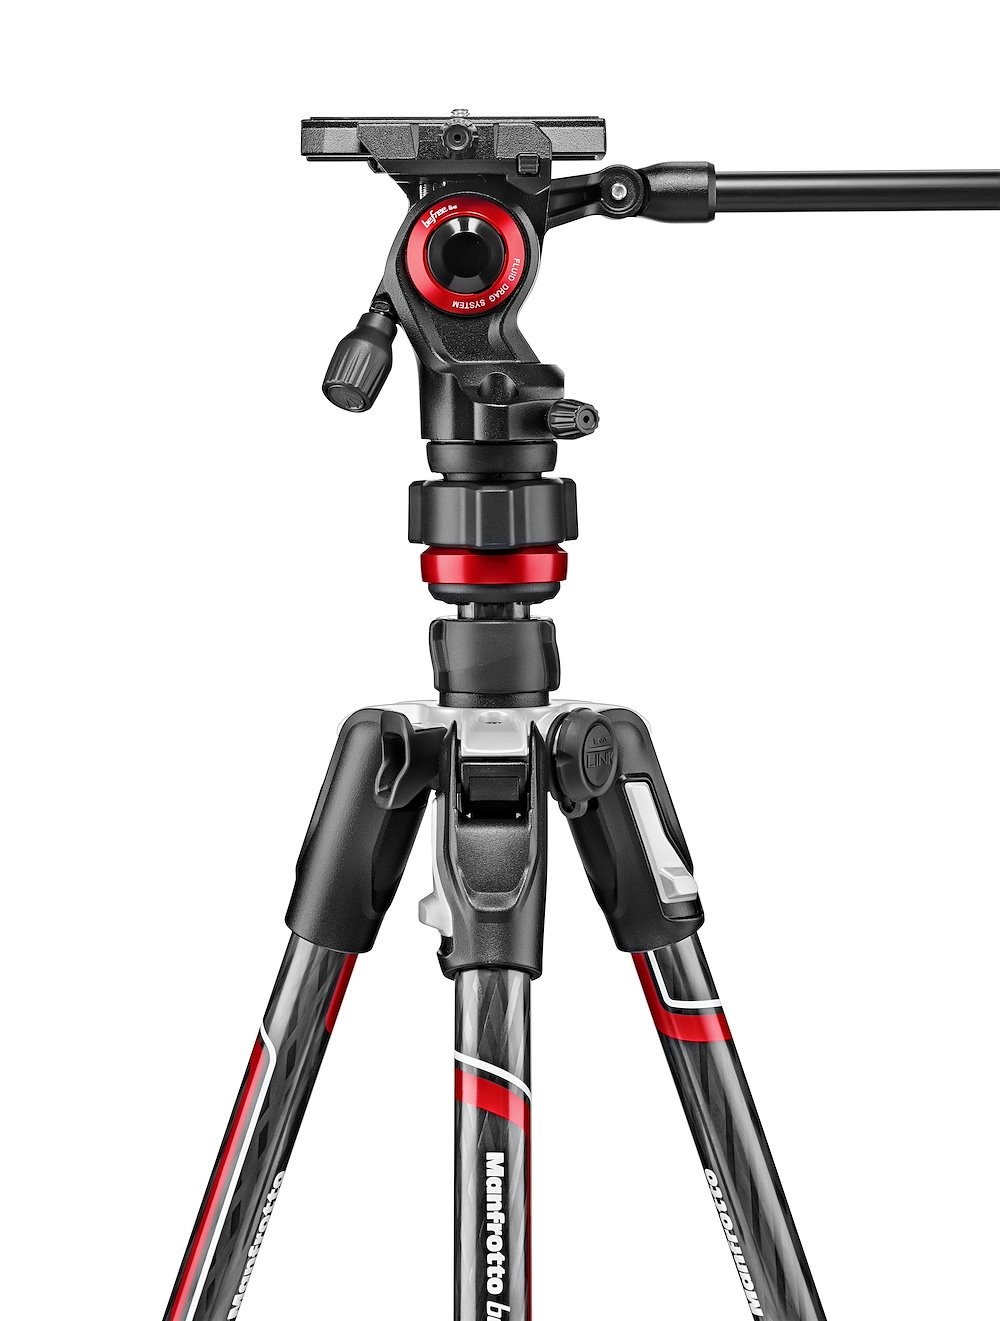 Even lighter: Manfrotto Befree Live Carbon Video Tripod